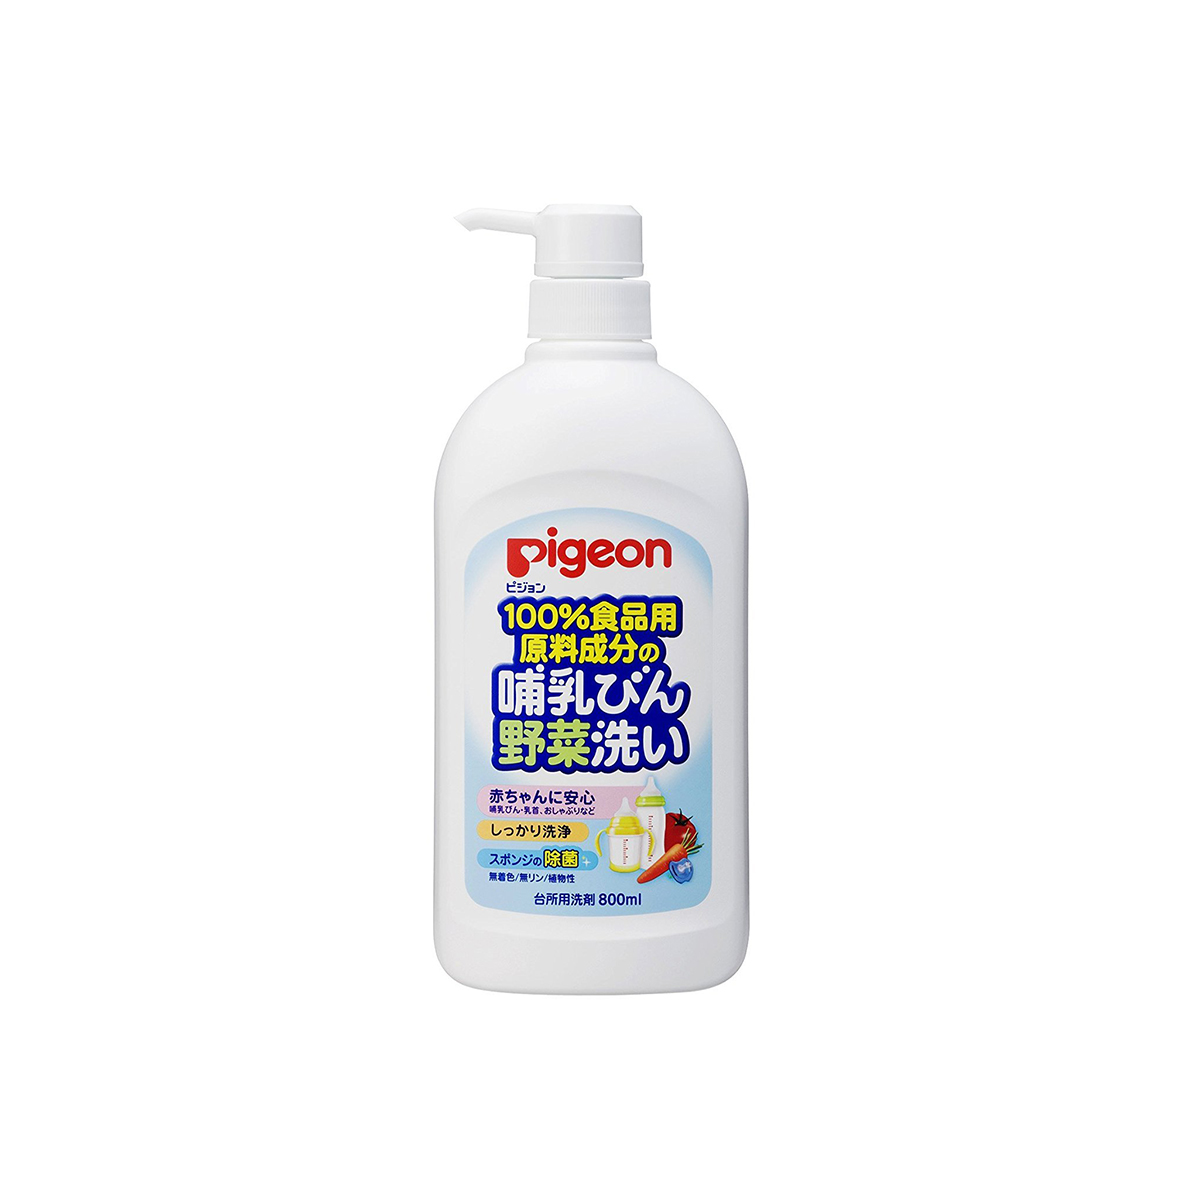 Buy pigeon Liquid Cleansing For Baby Bottle Baby Care 800ml  [Ship from SG / 100% Authentic] Singapore